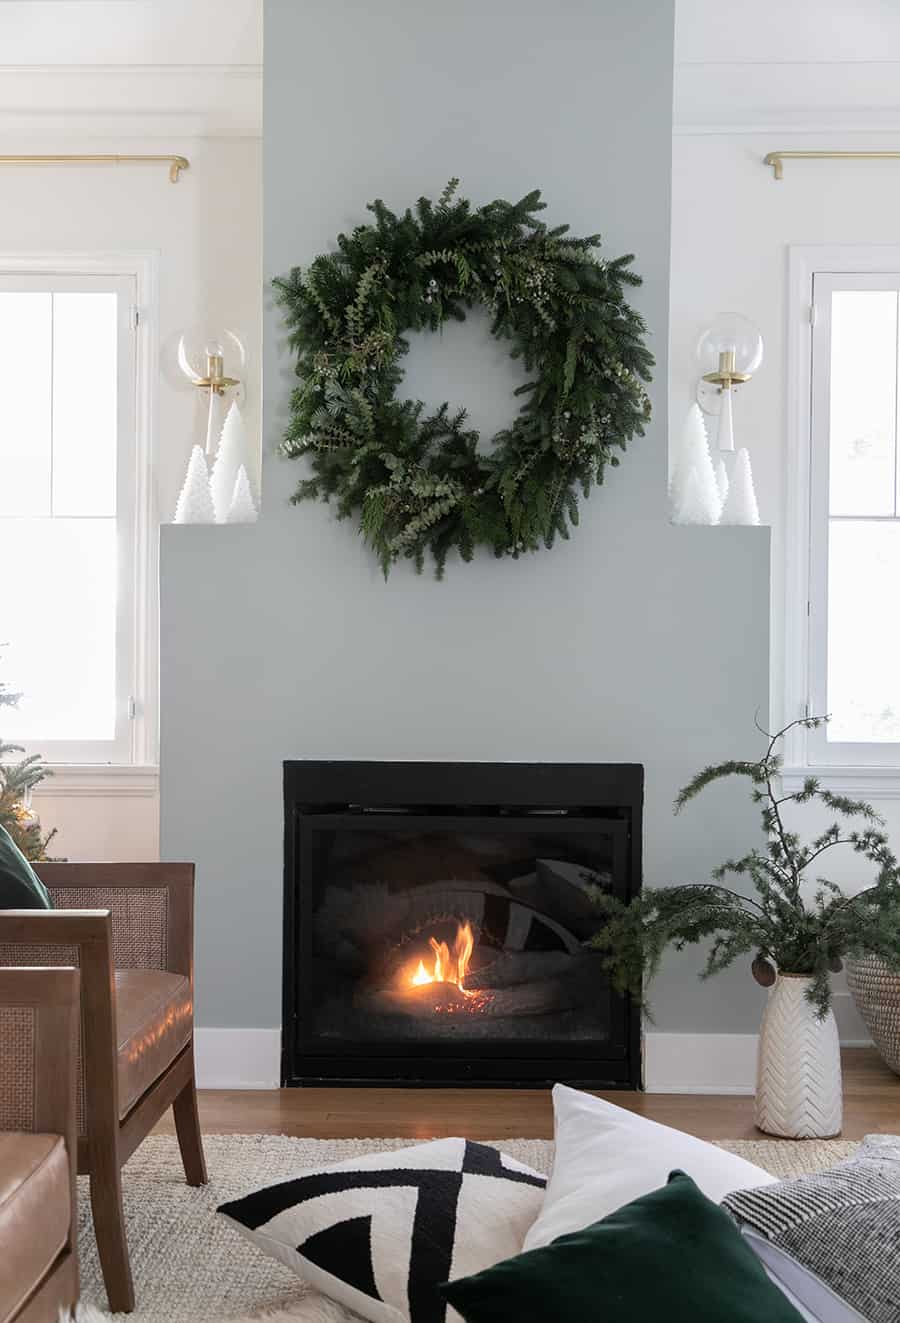 pictures of living room decorated for christmas light airy design decor sugar and charm it feels so warm cozy now we ve loved sitting by the fire every night with a movie on see my below